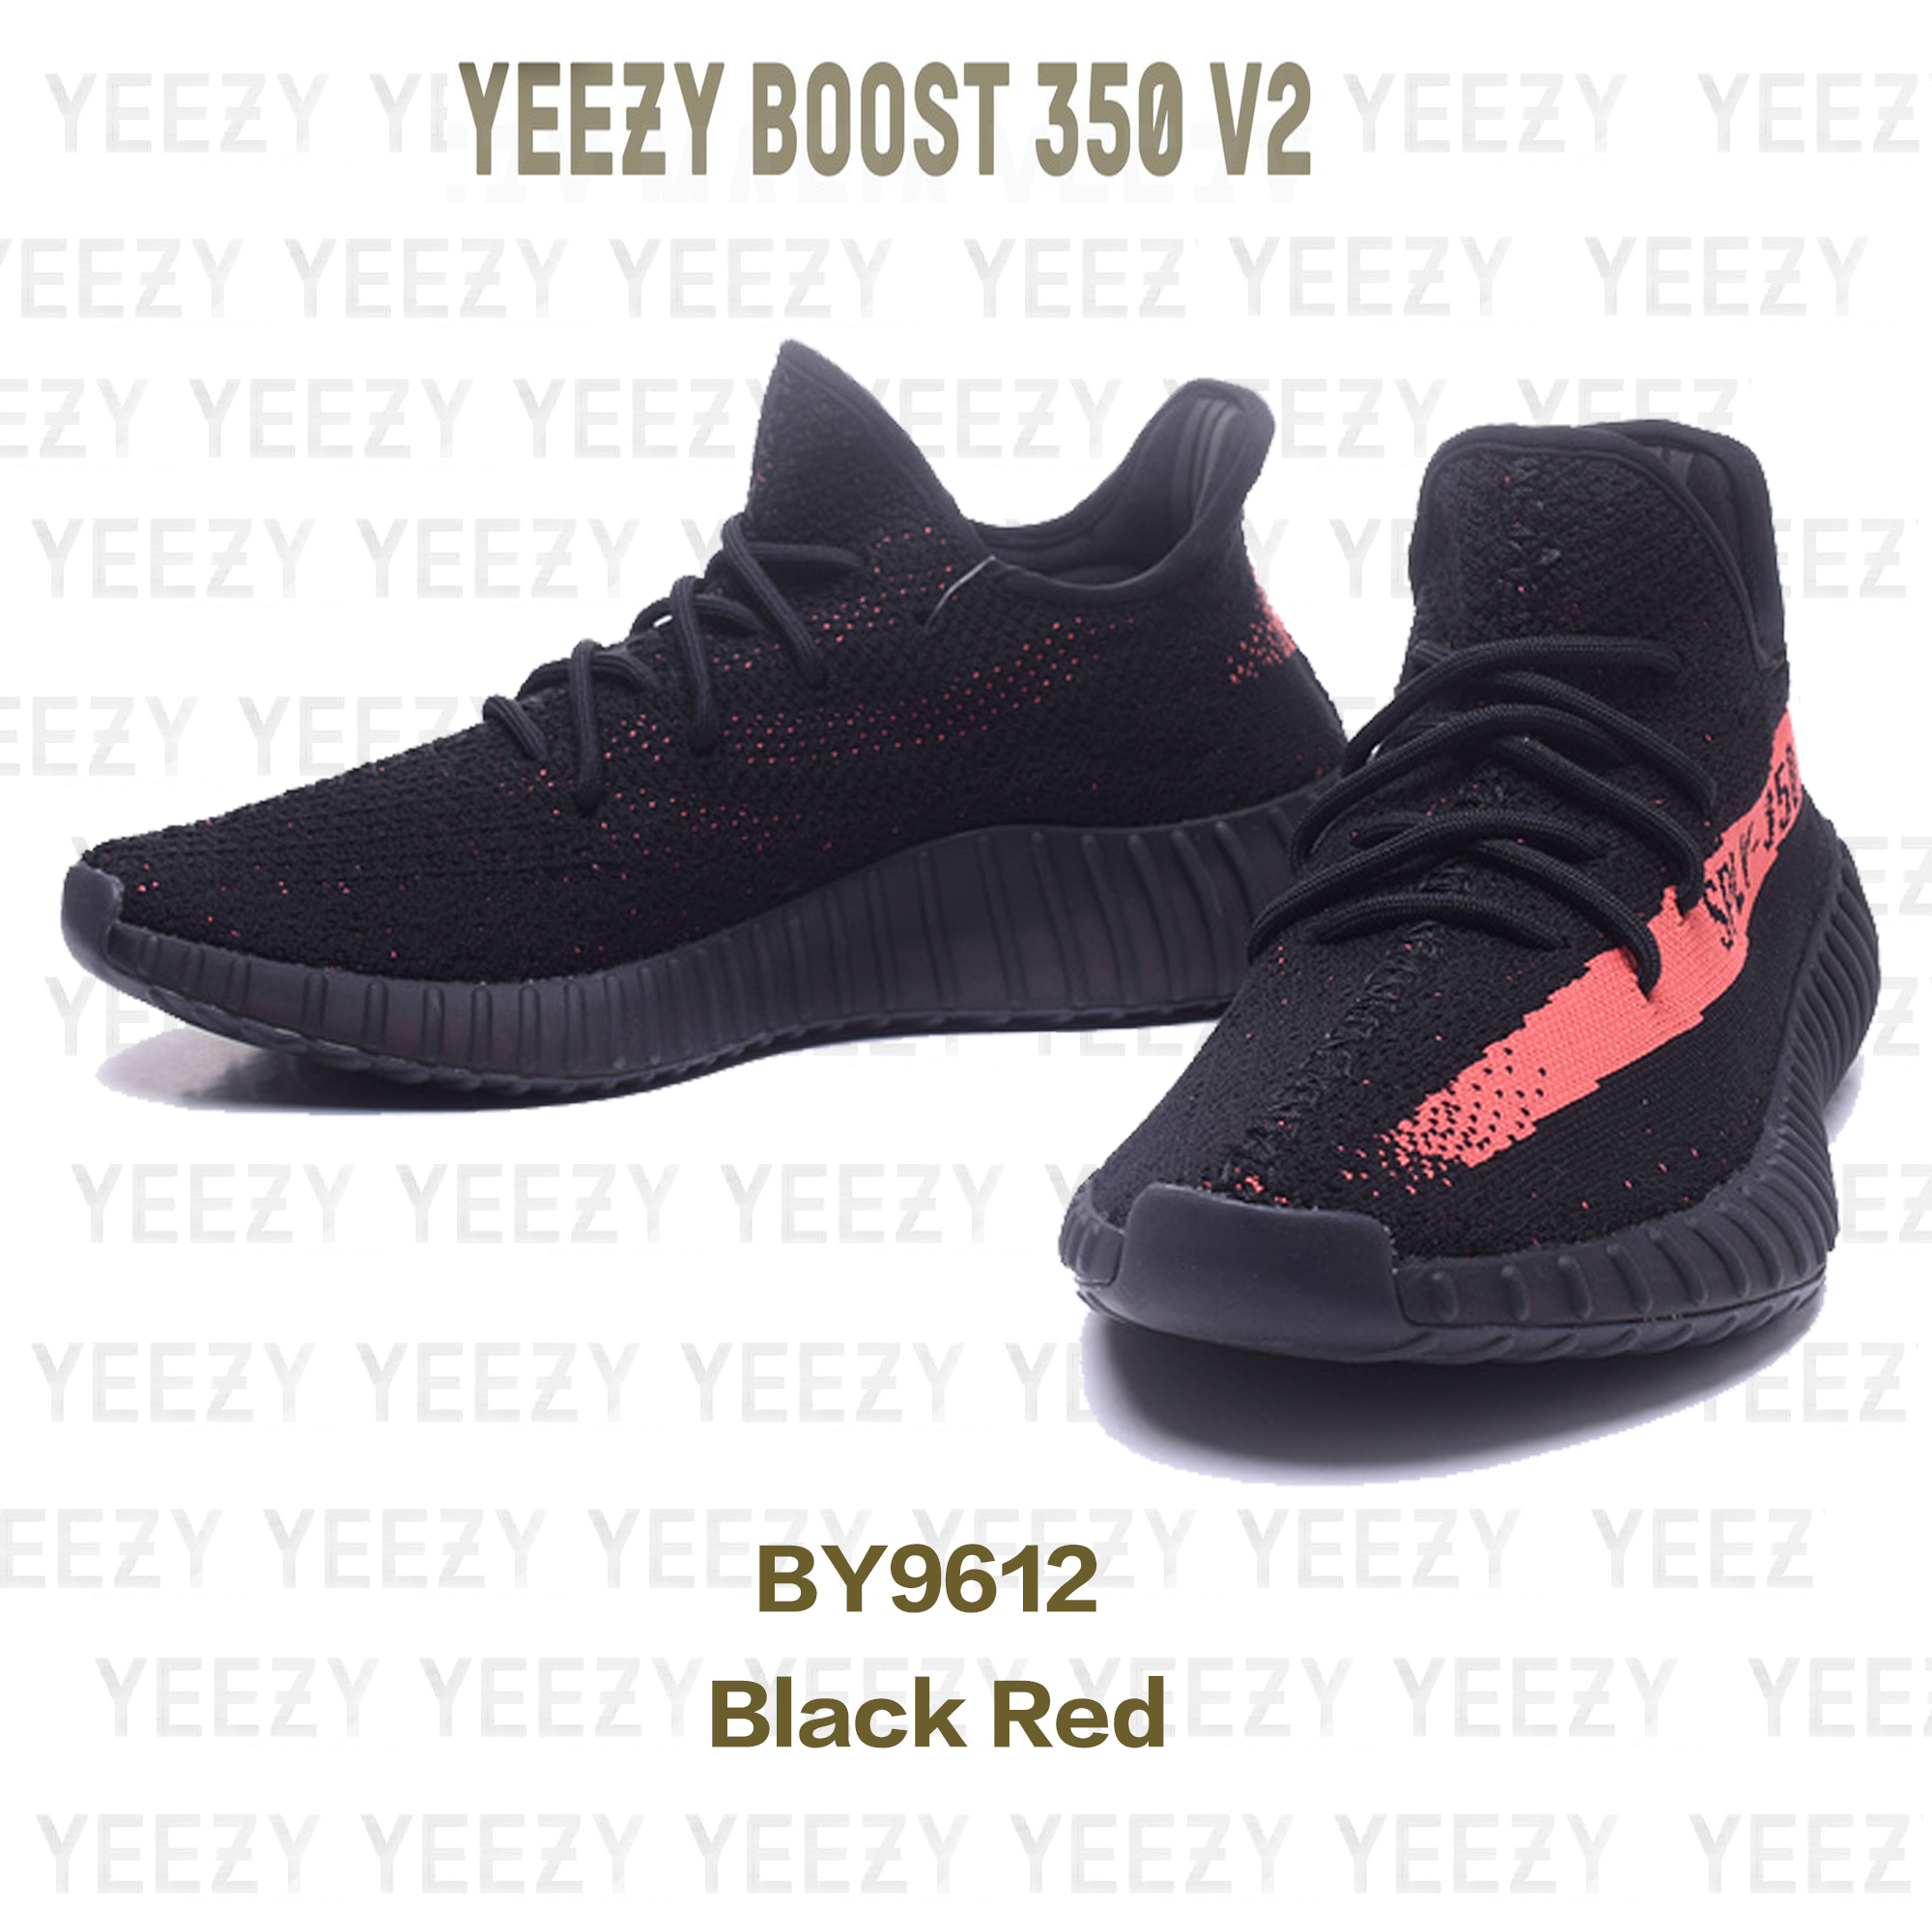 62c43bd9ce226 men s Yeezy Boost 350 V2